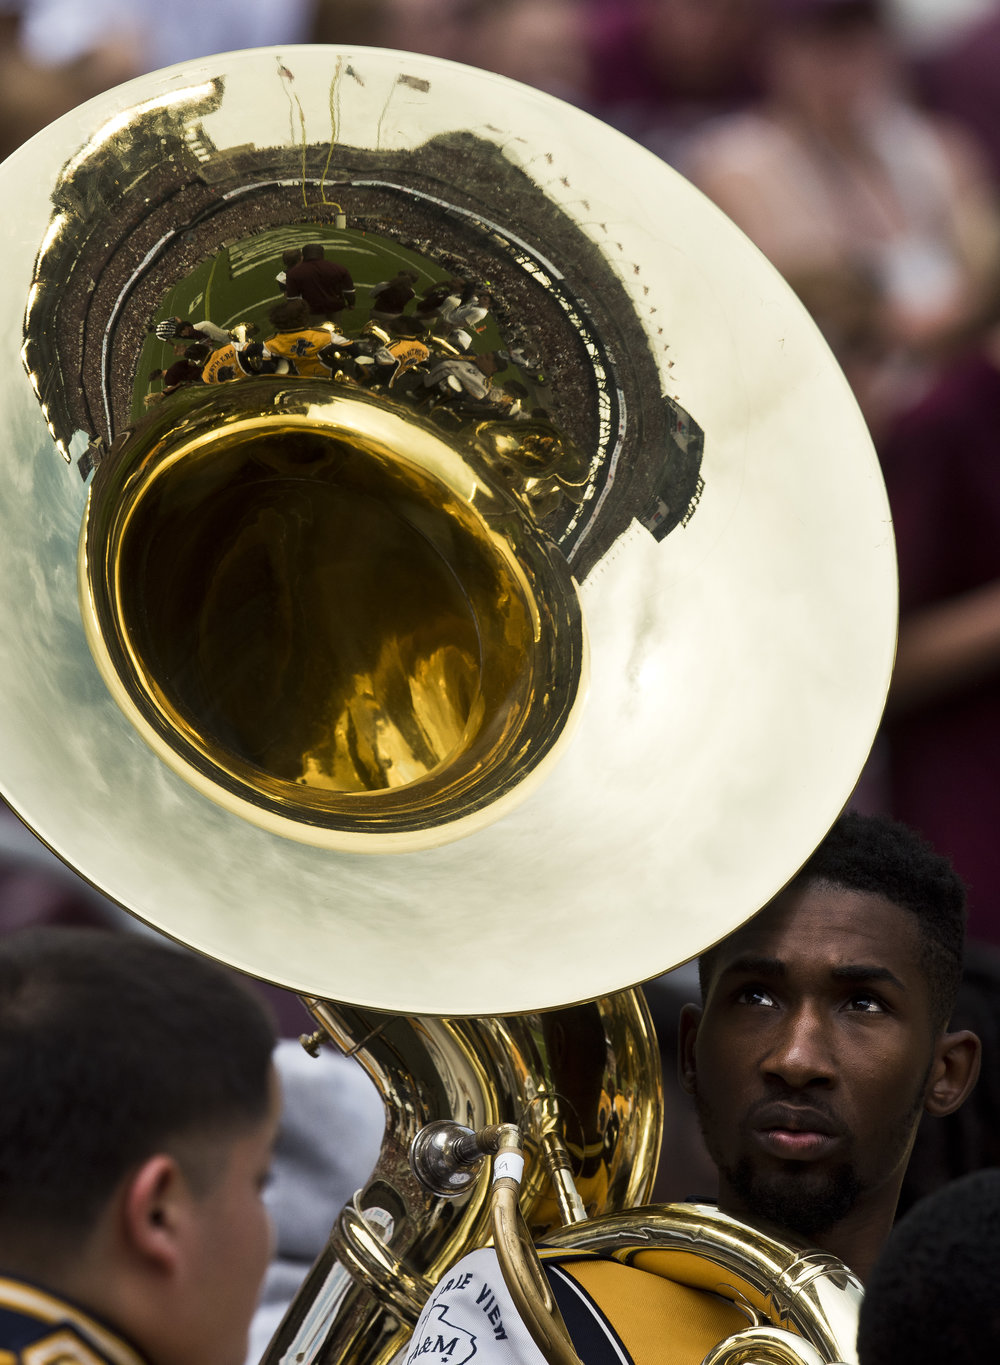 Kyle Field is reflected in the sousaphone of a Prairie View A&M University marching band member before taking the field for their halftime performance, Saturday, Sept. 10, 2016, in College Station, Texas.